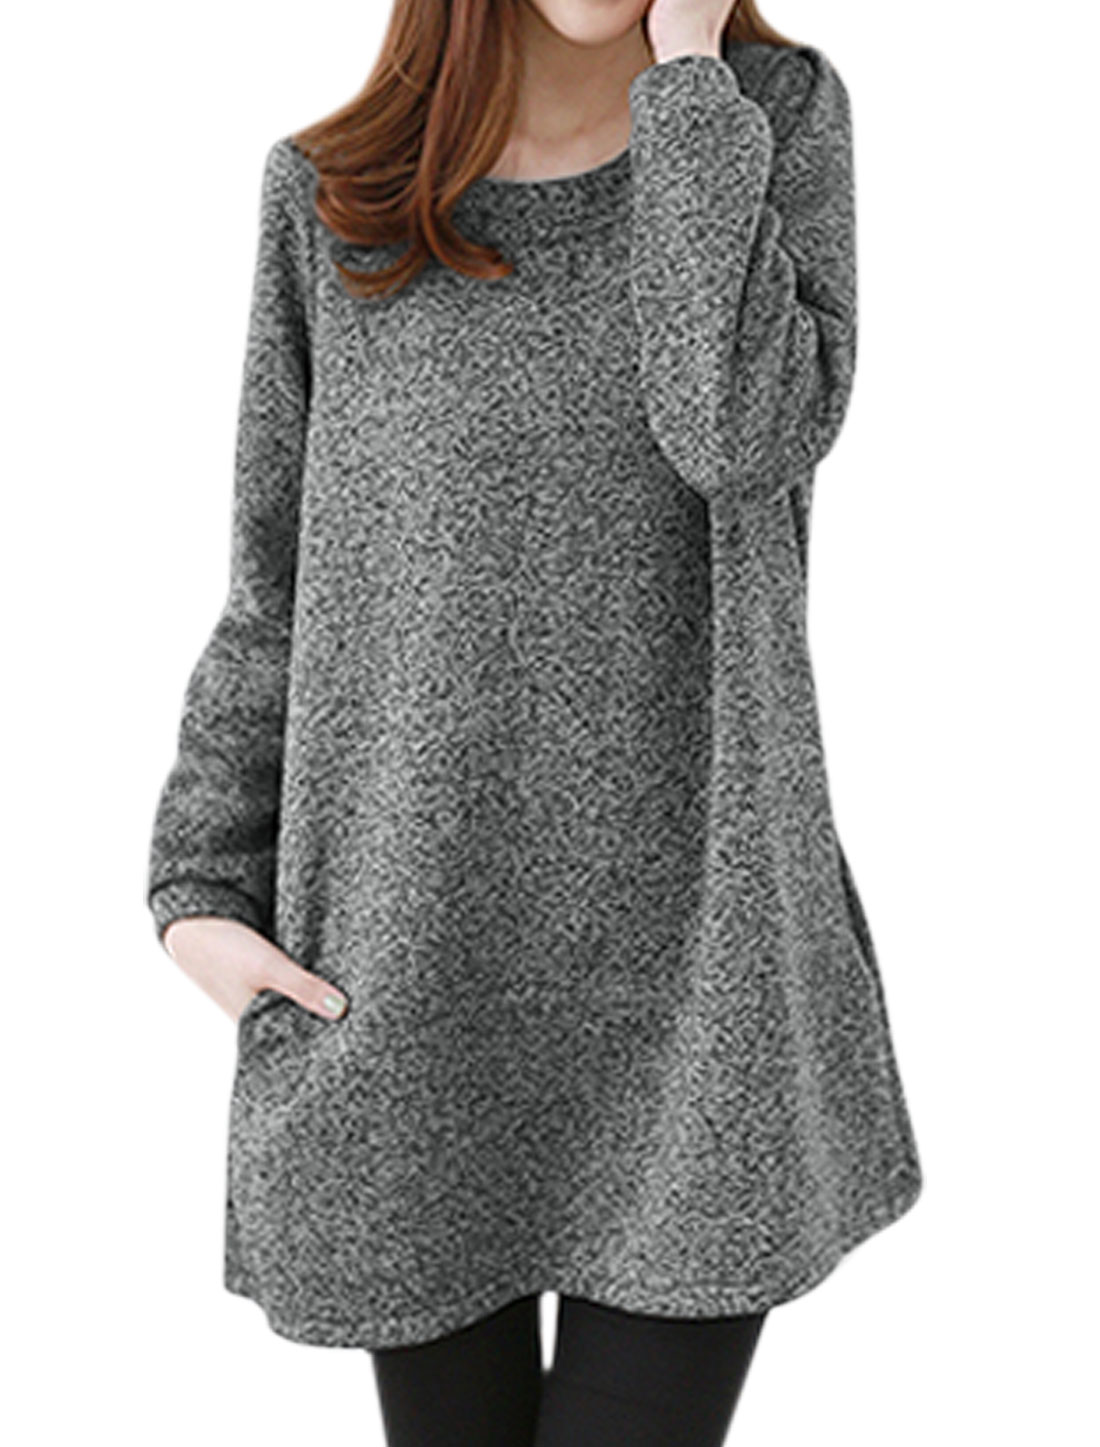 Round Neck Bowknot Decor Back Casual Tunic Blouse for Women Heather Gray XS